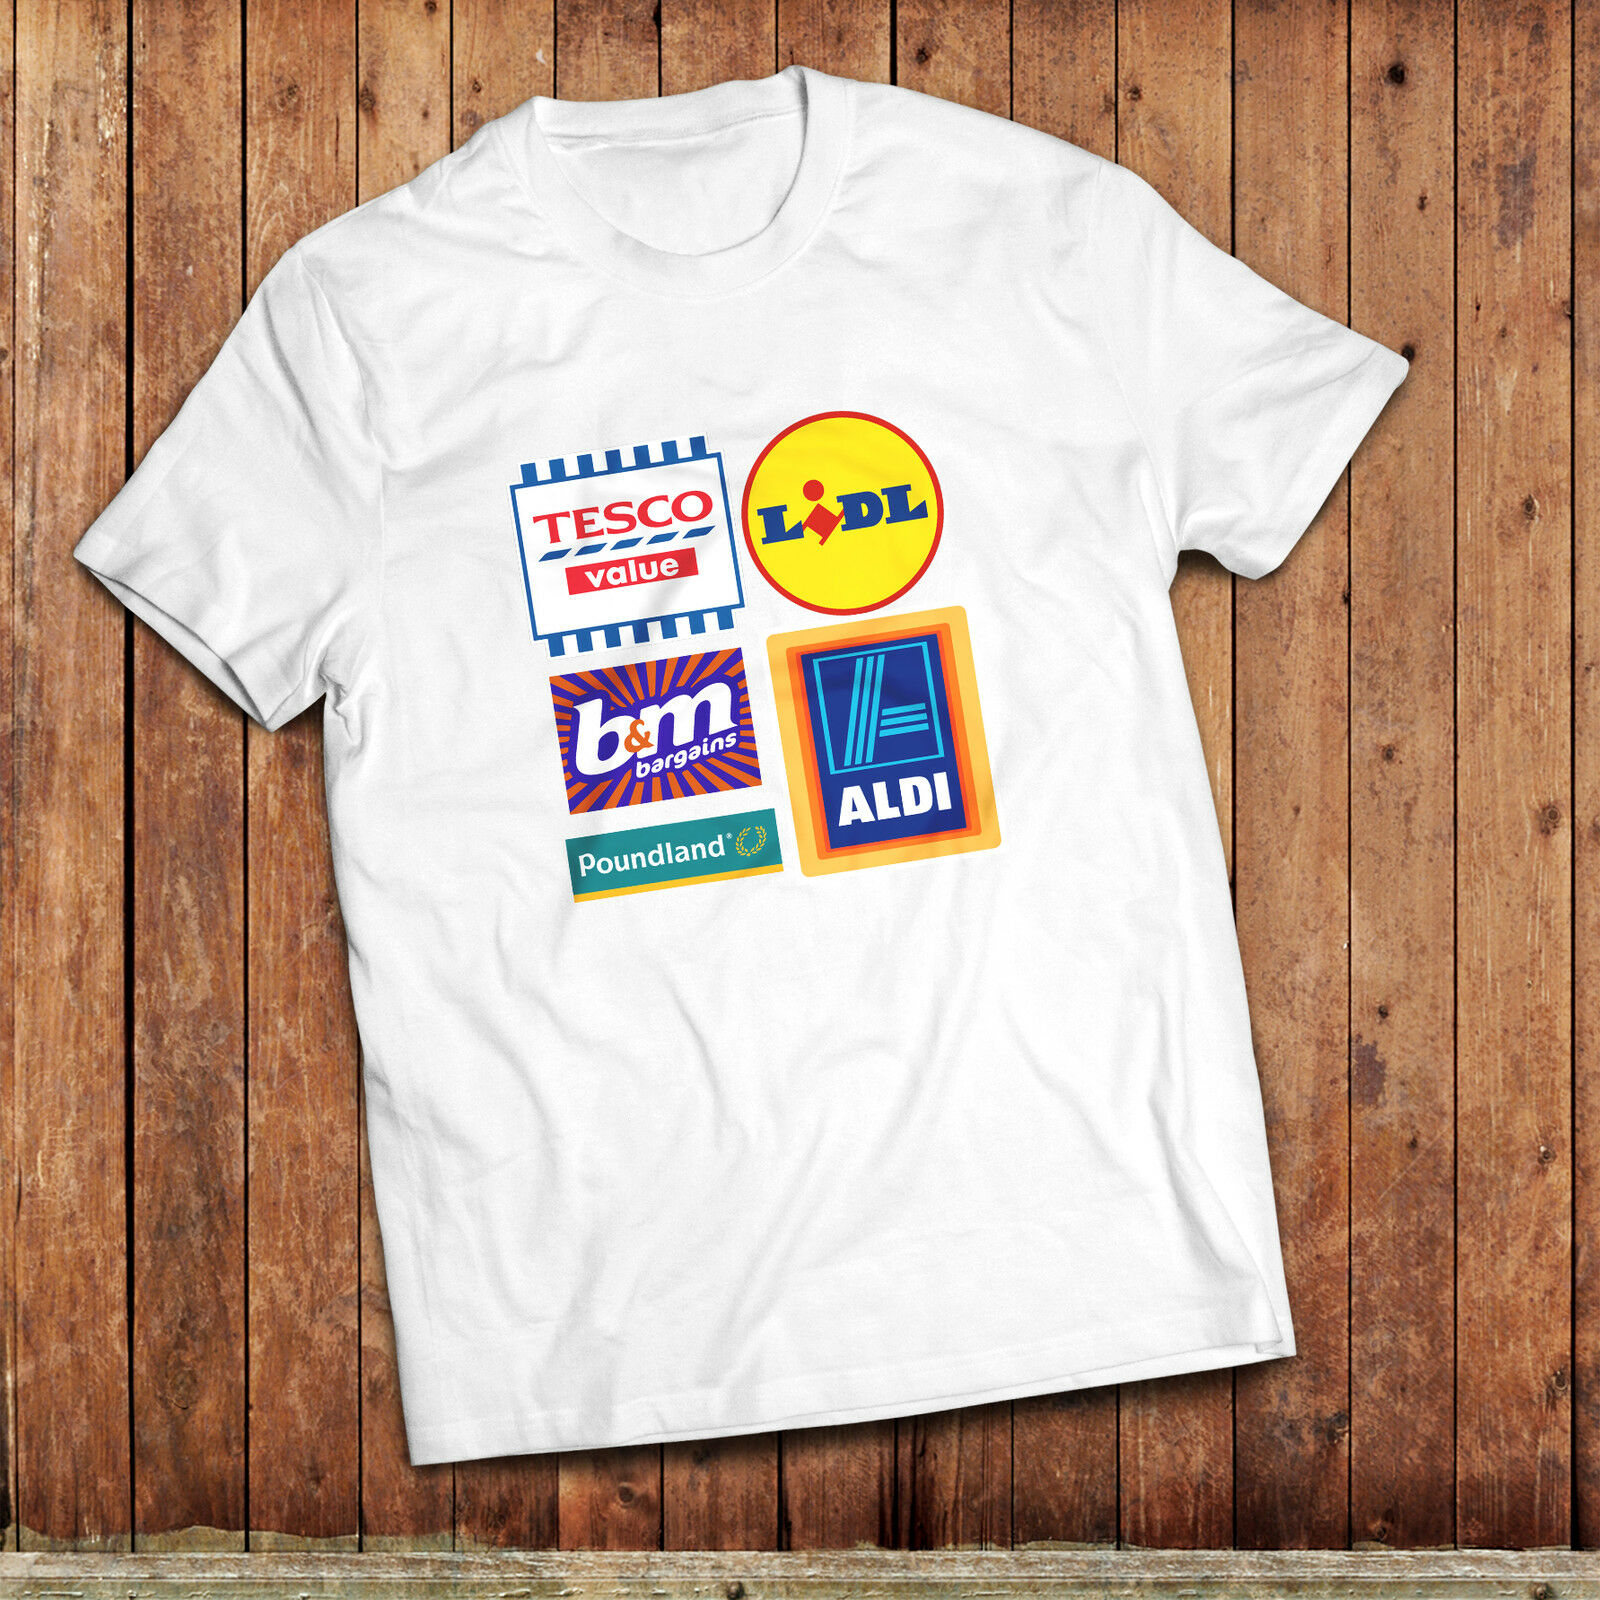 Budget supermarket T-Shirt, Tesco Value, Lidl, Aldi, poundland, B &M, UK high st image